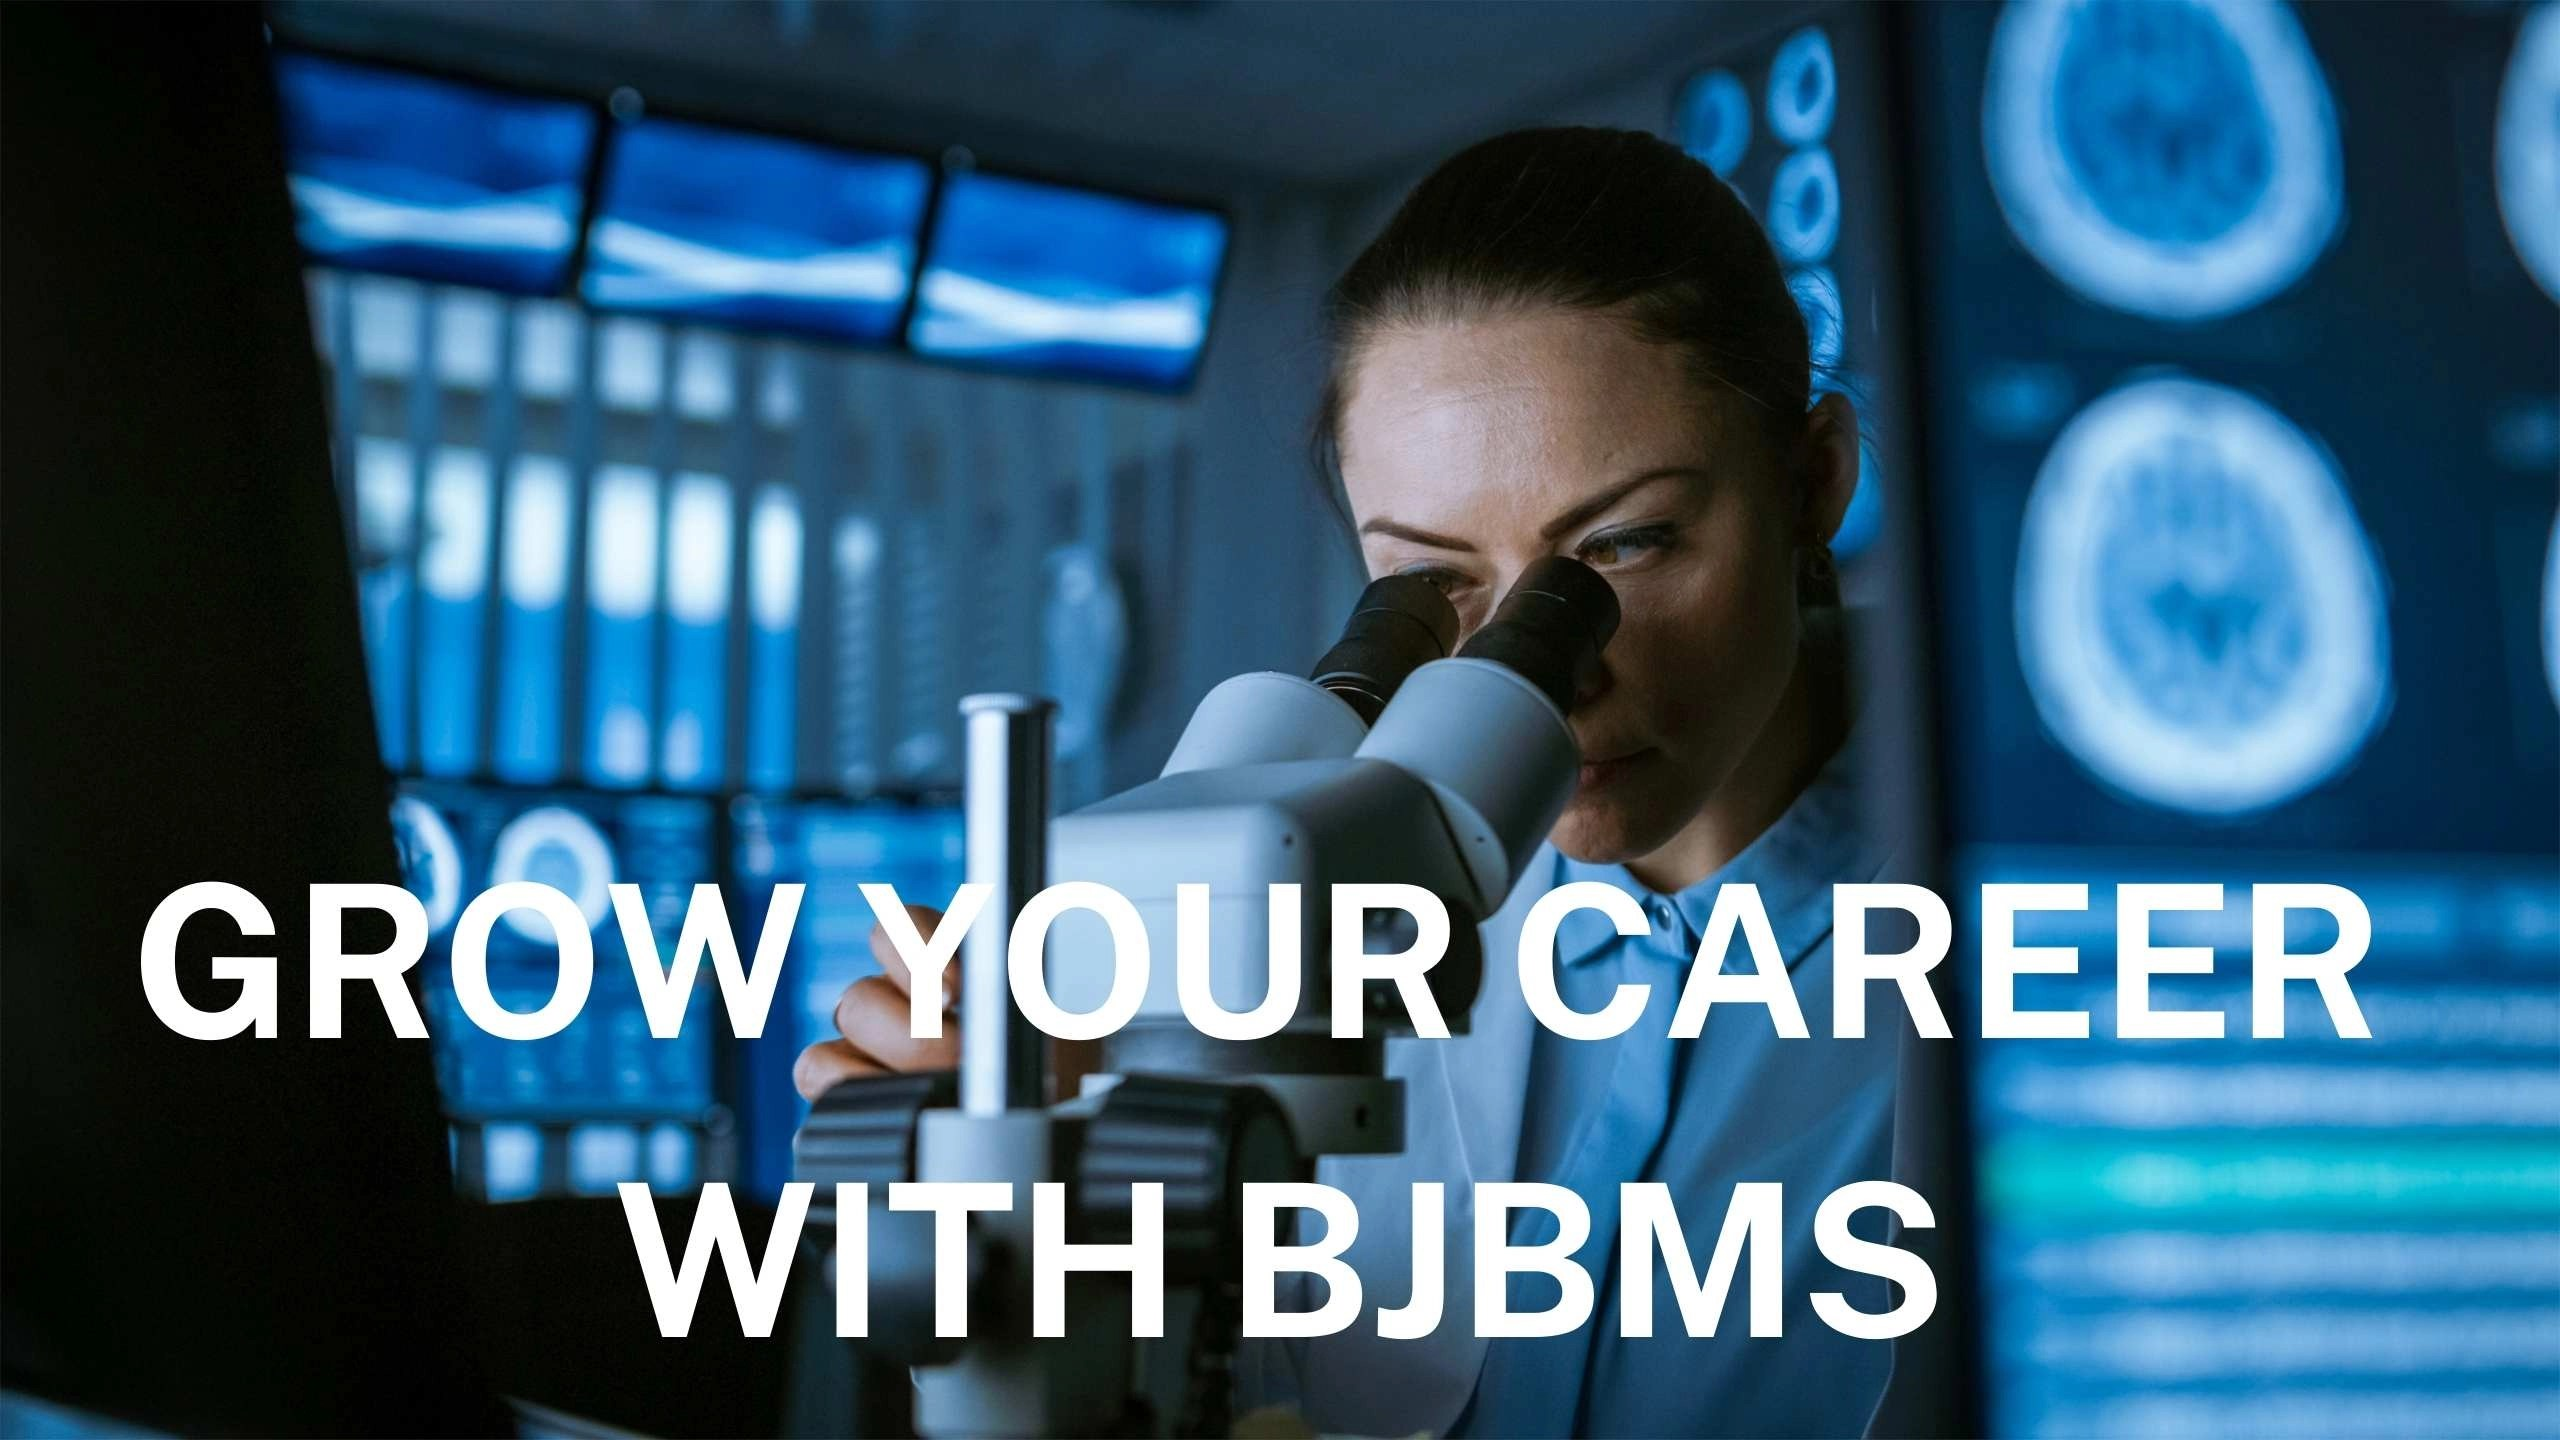 Grow your career with BJBMS (1)